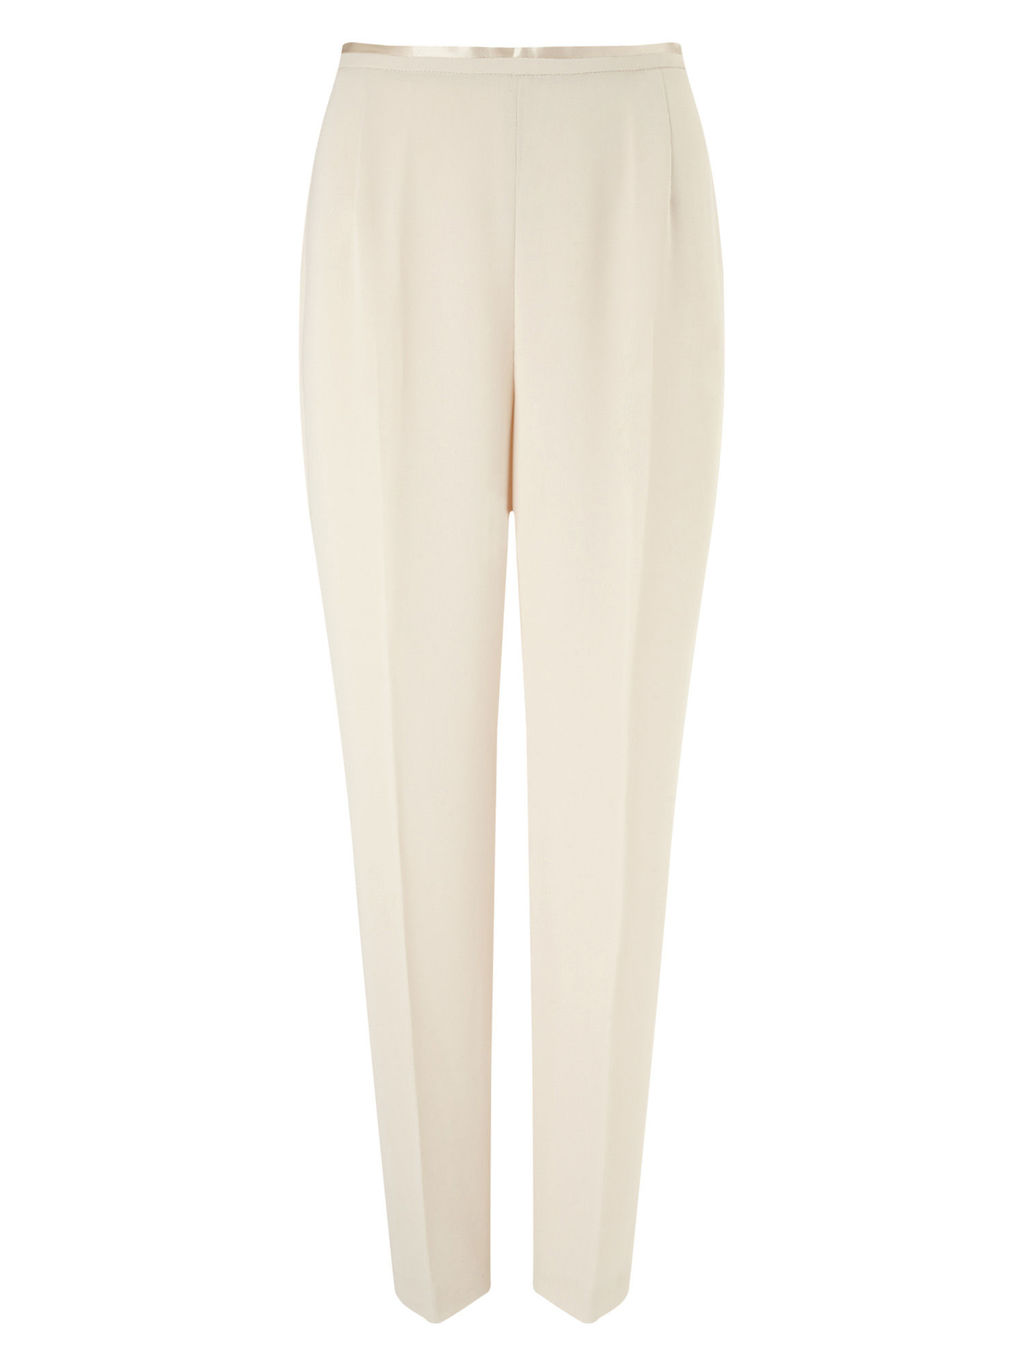 Crepe Trouser - length: standard; pattern: plain; waist: mid/regular rise; predominant colour: ivory/cream; occasions: casual, work, creative work; fibres: polyester/polyamide - 100%; hip detail: front pleats at hip level; texture group: crepes; fit: straight leg; pattern type: fabric; style: standard; season: s/s 2016